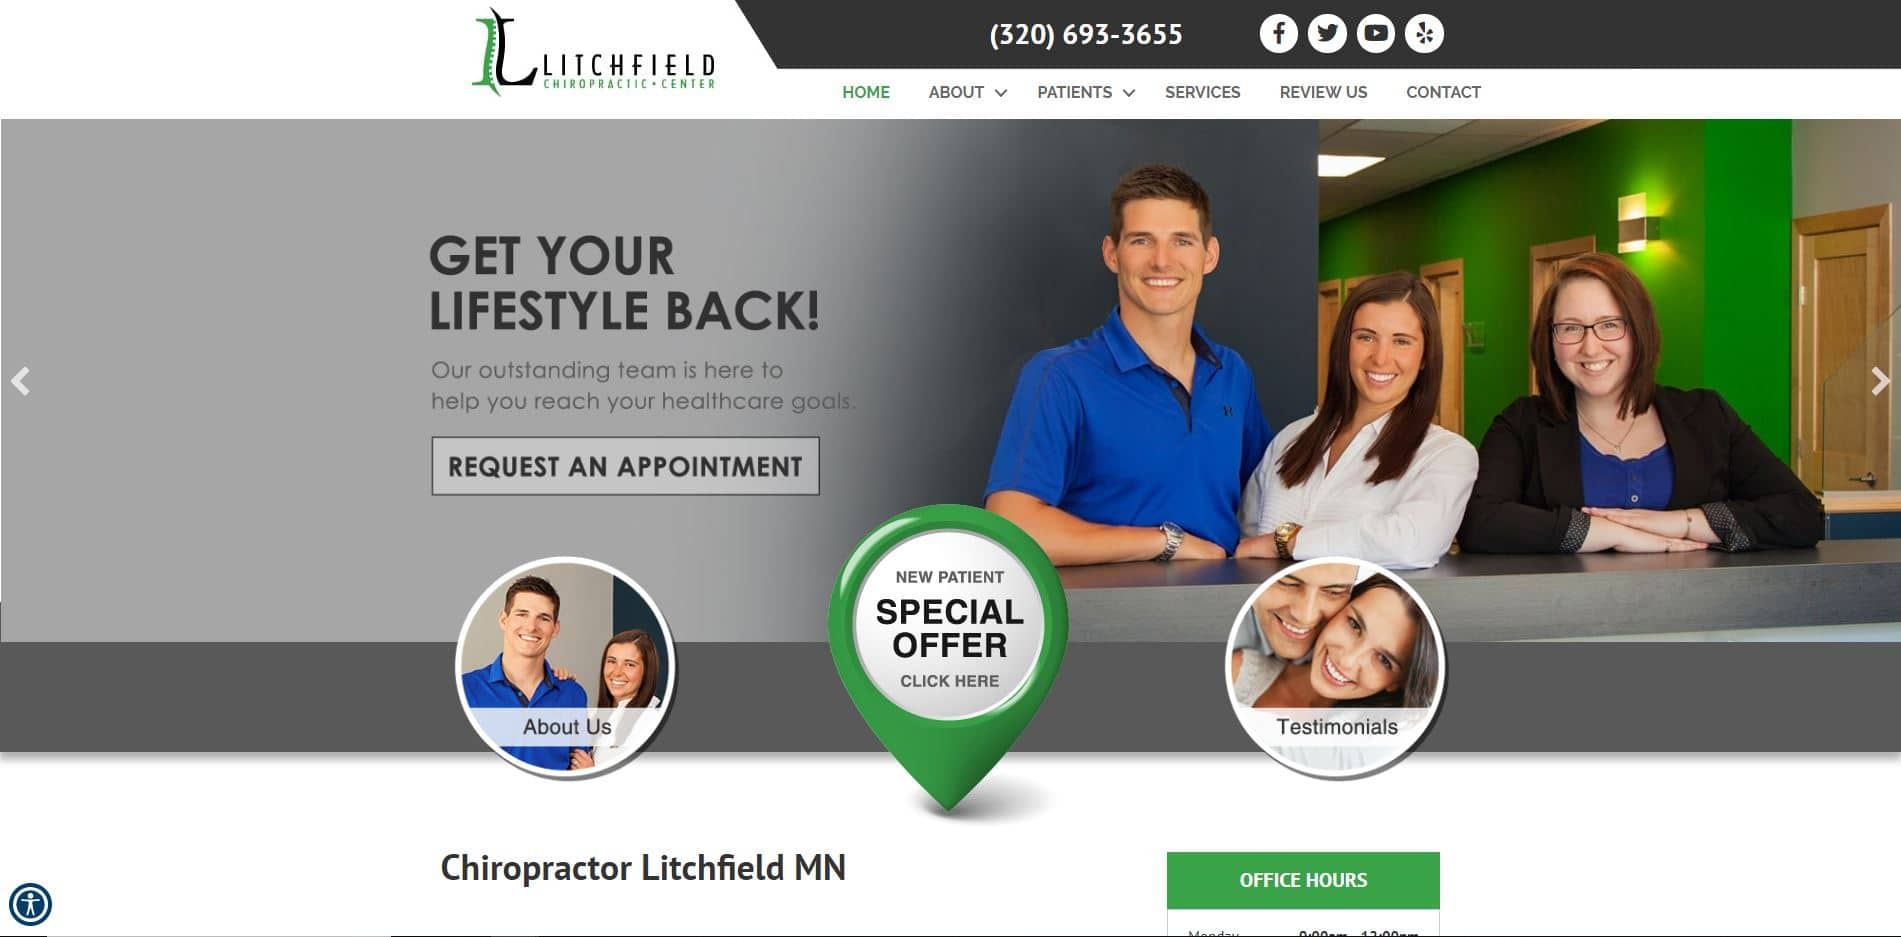 Chiropractor in Litchfield